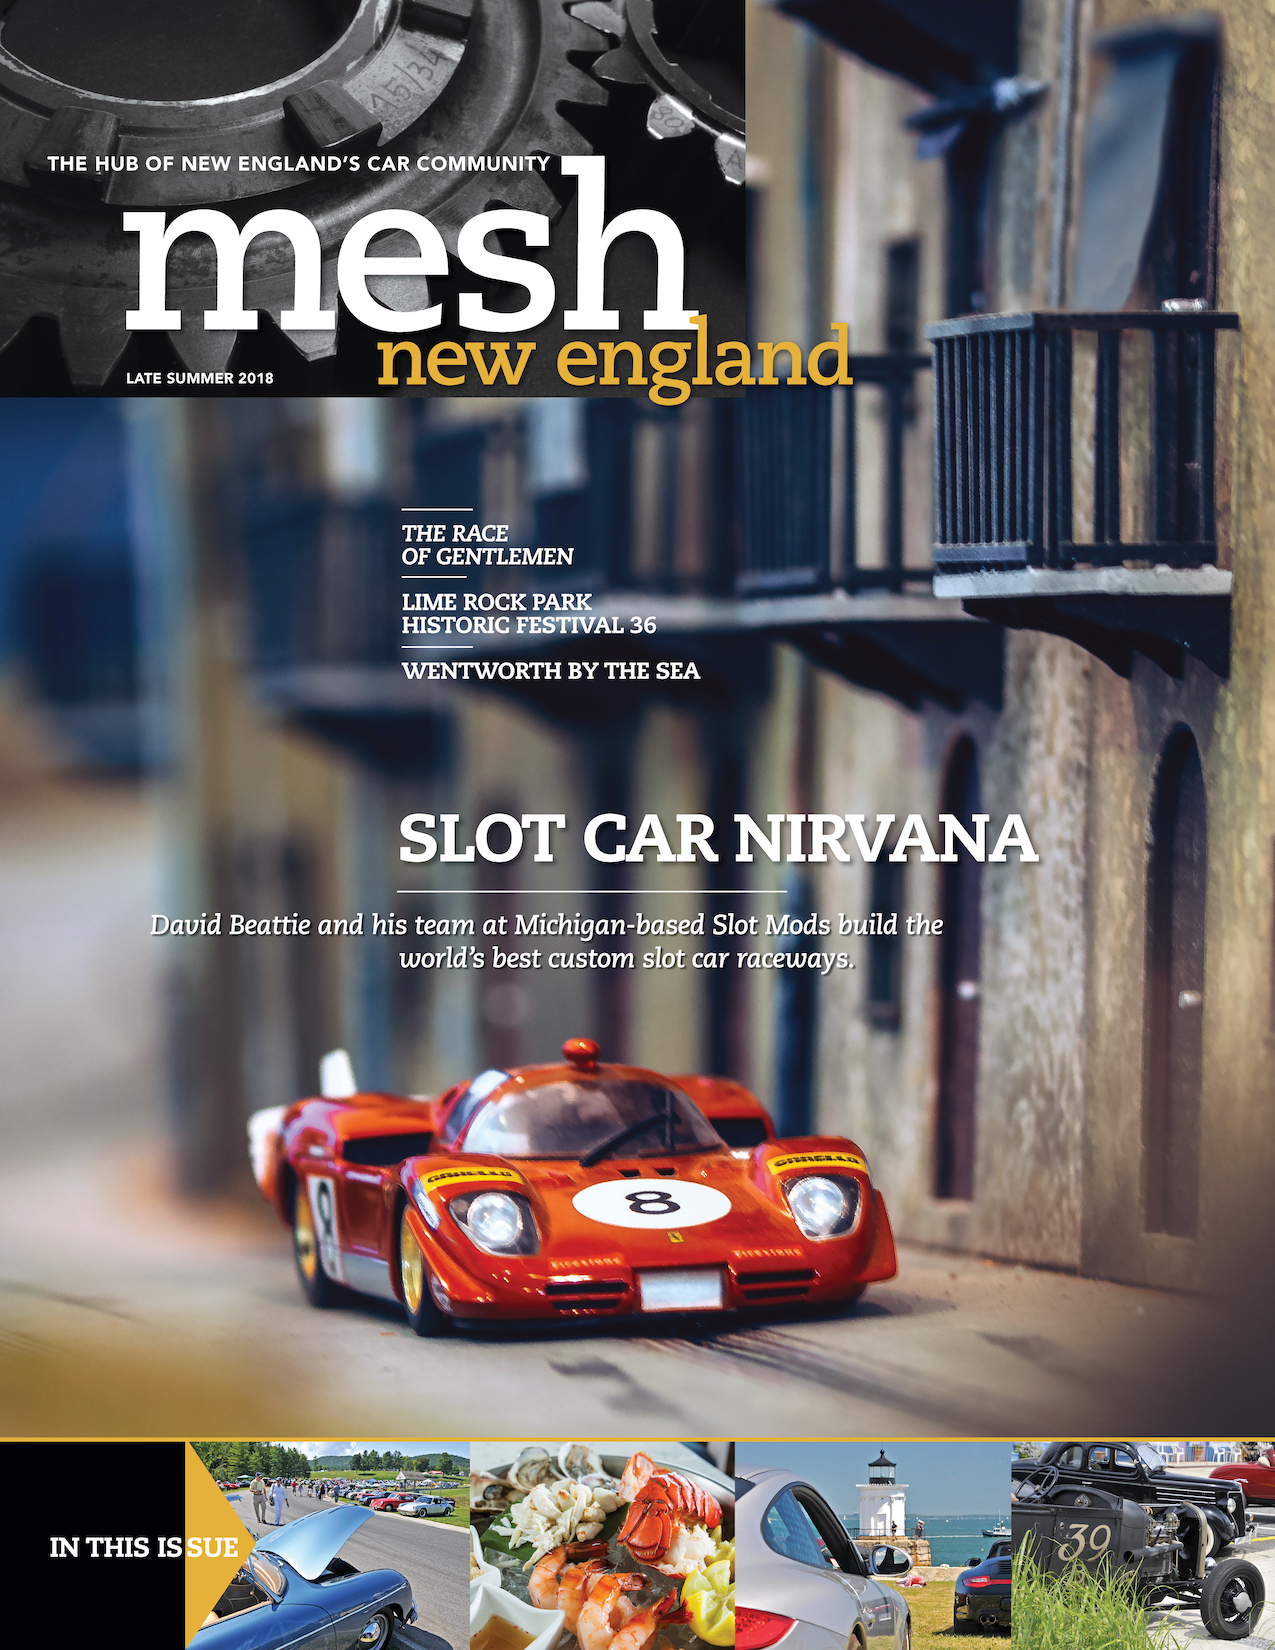 Late Summer 2018 Cover of Mesh New England Magazine Red slot car pictured.jpg